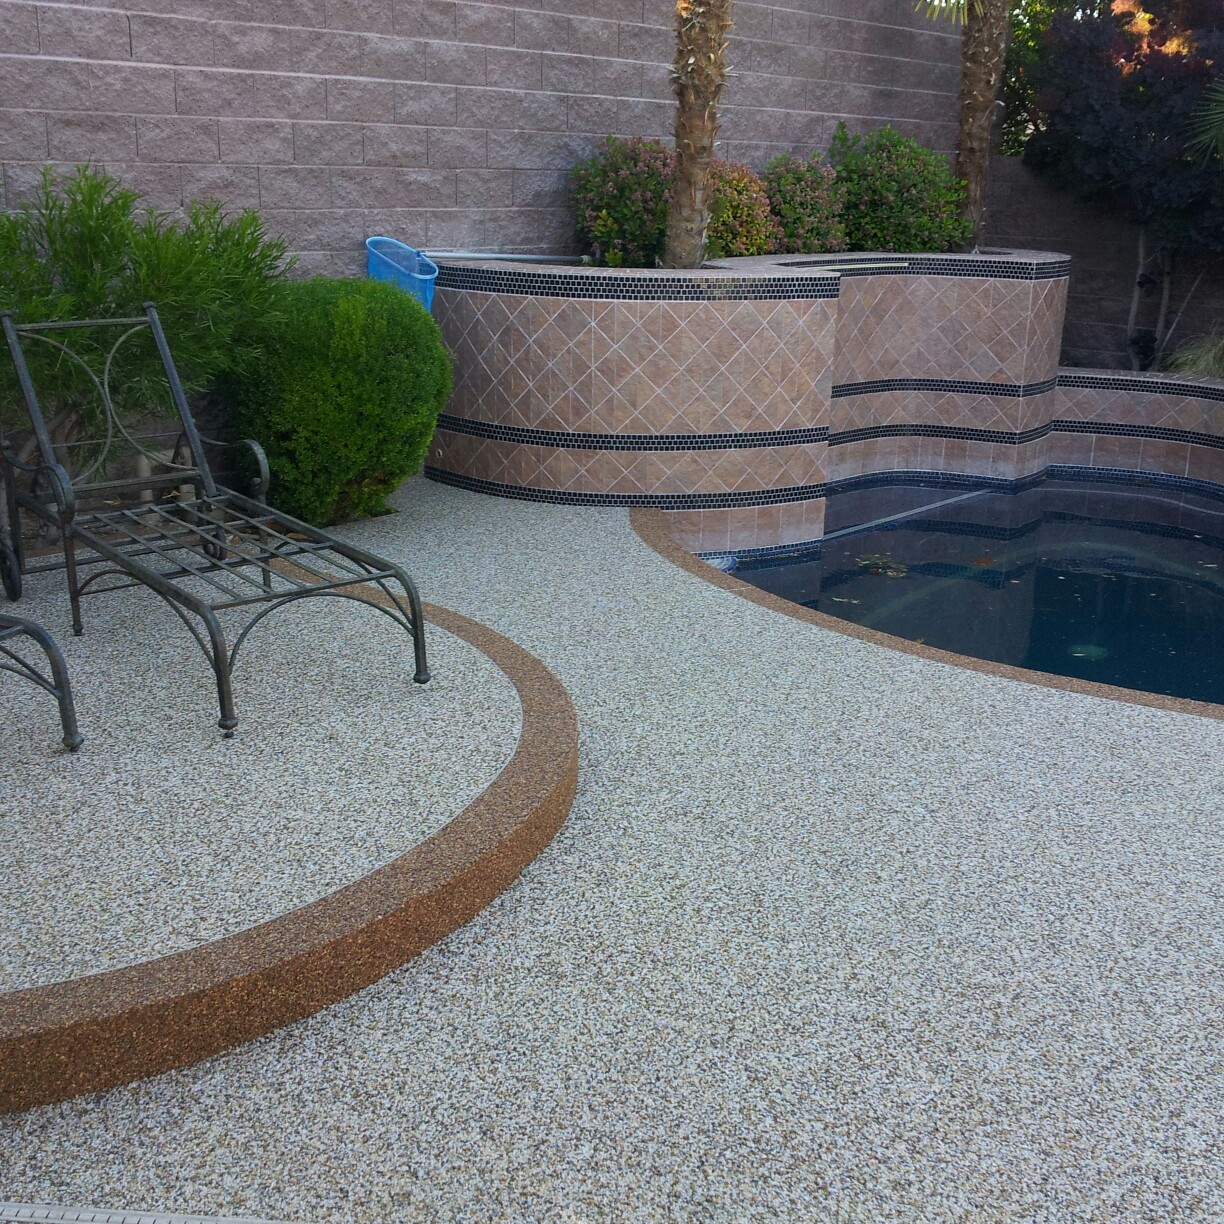 We just finished a new pool deck installation of Pebble